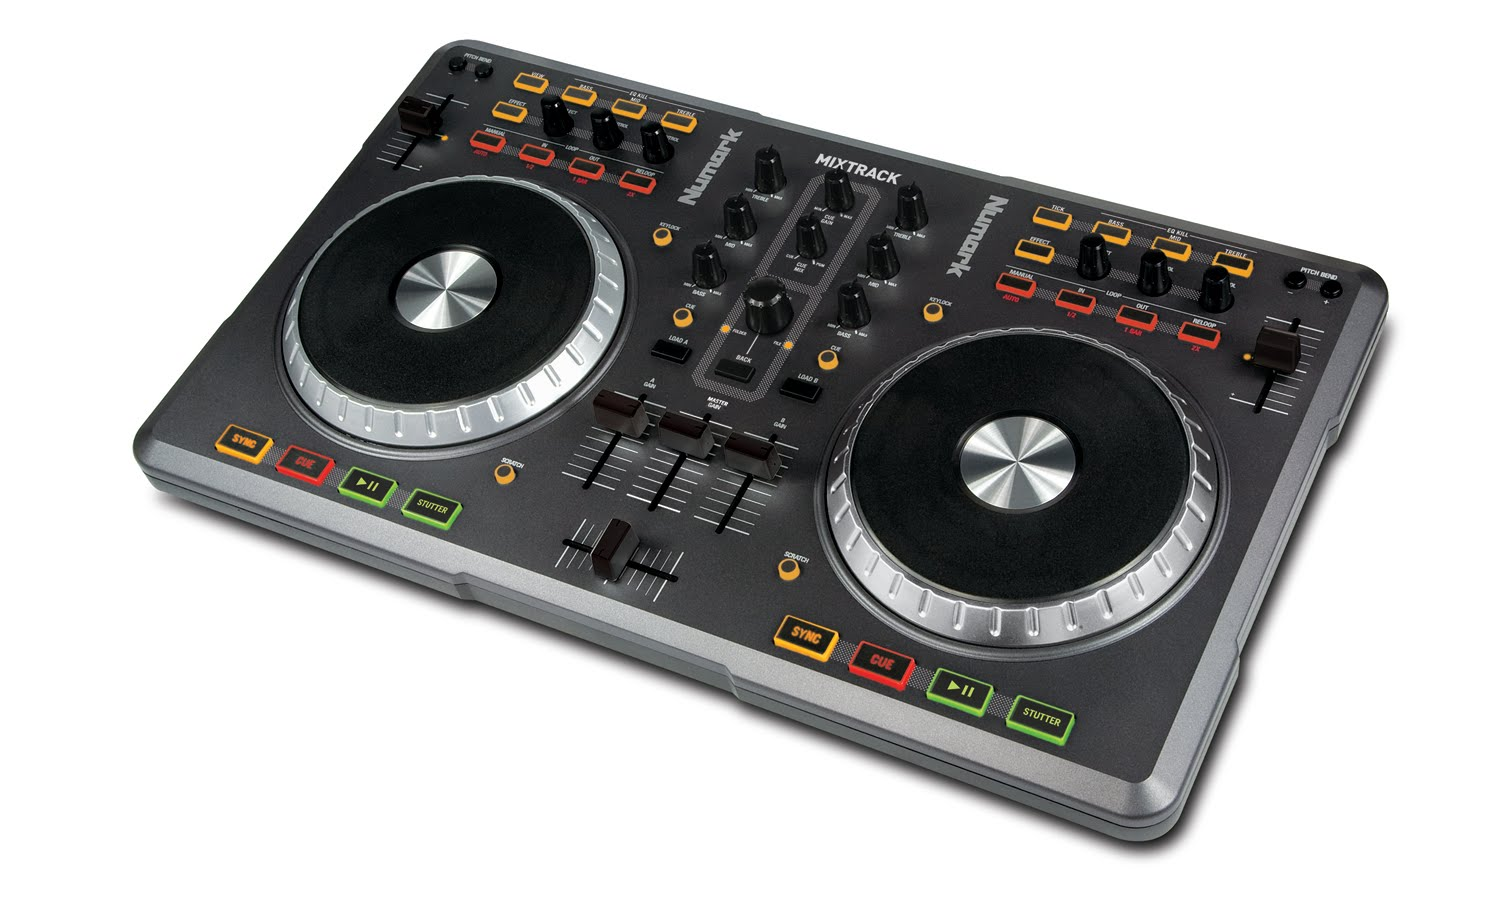 dj equipment Serious djs know how important their gear is please browse around our categories and brands on the left hand navigation on any product page you are able to tell us the budget you have for your gear and we will work with you to offer you great savings.